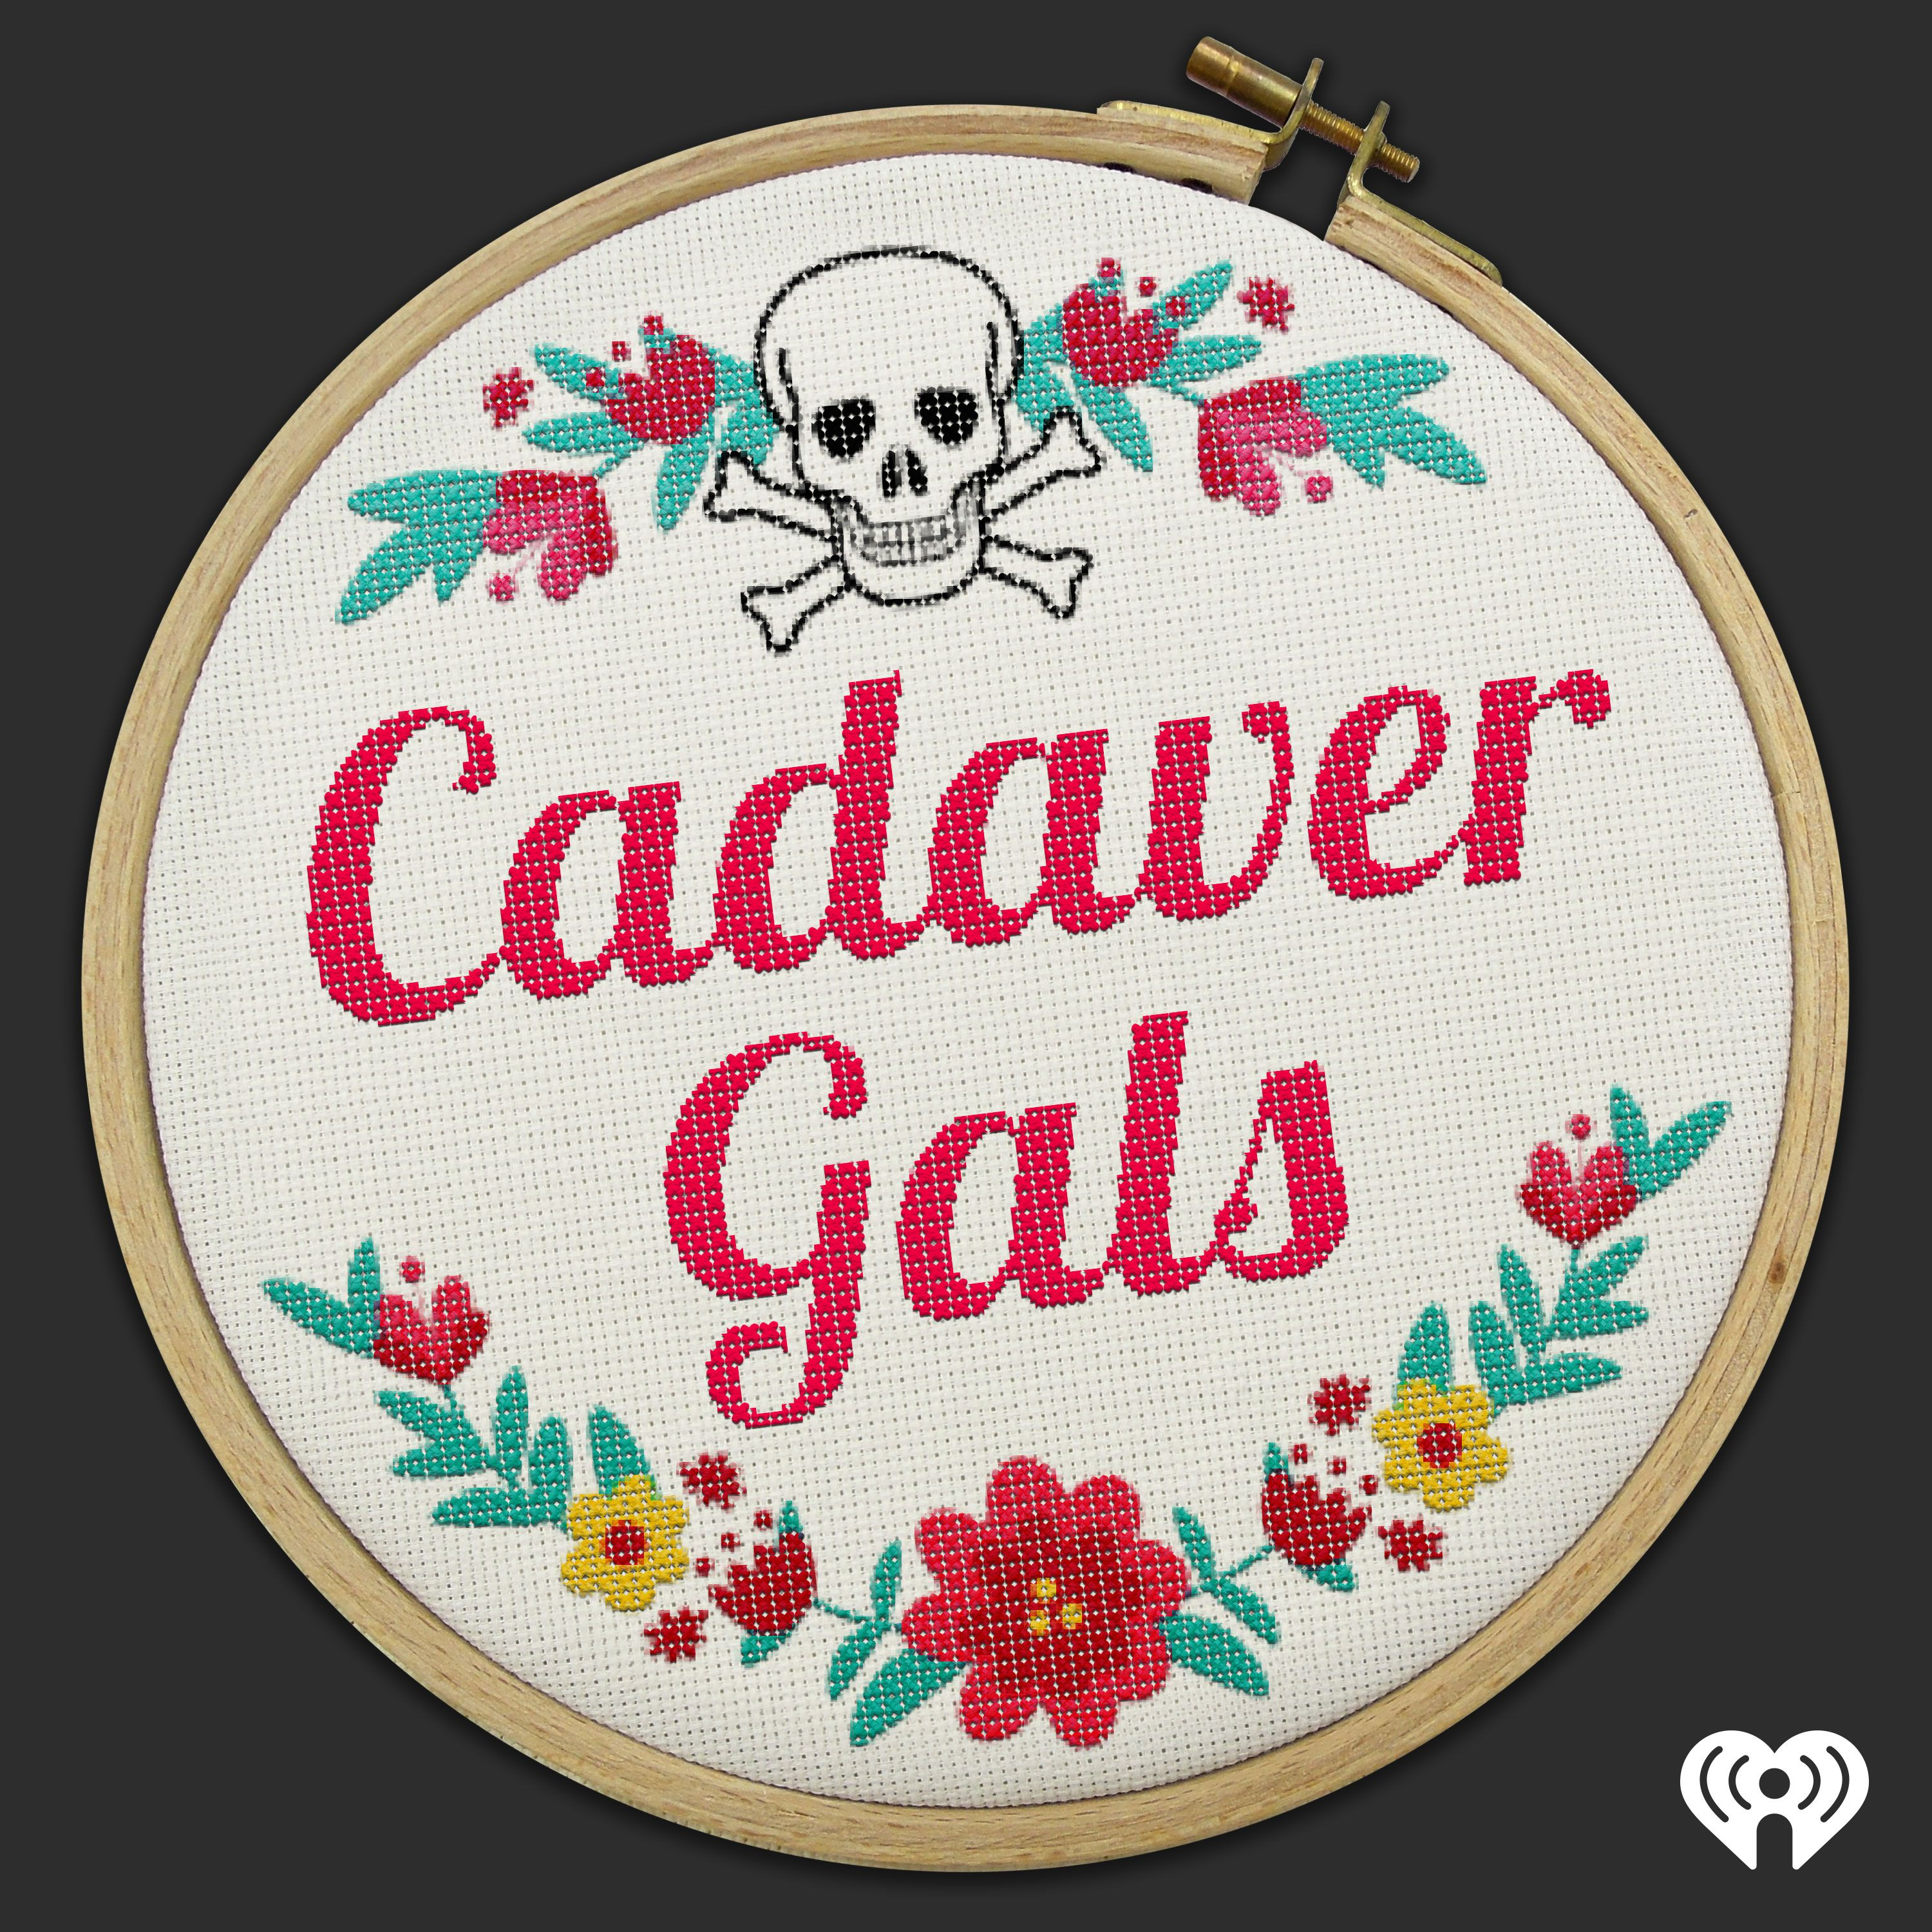 Introducing: Cadaver Gals